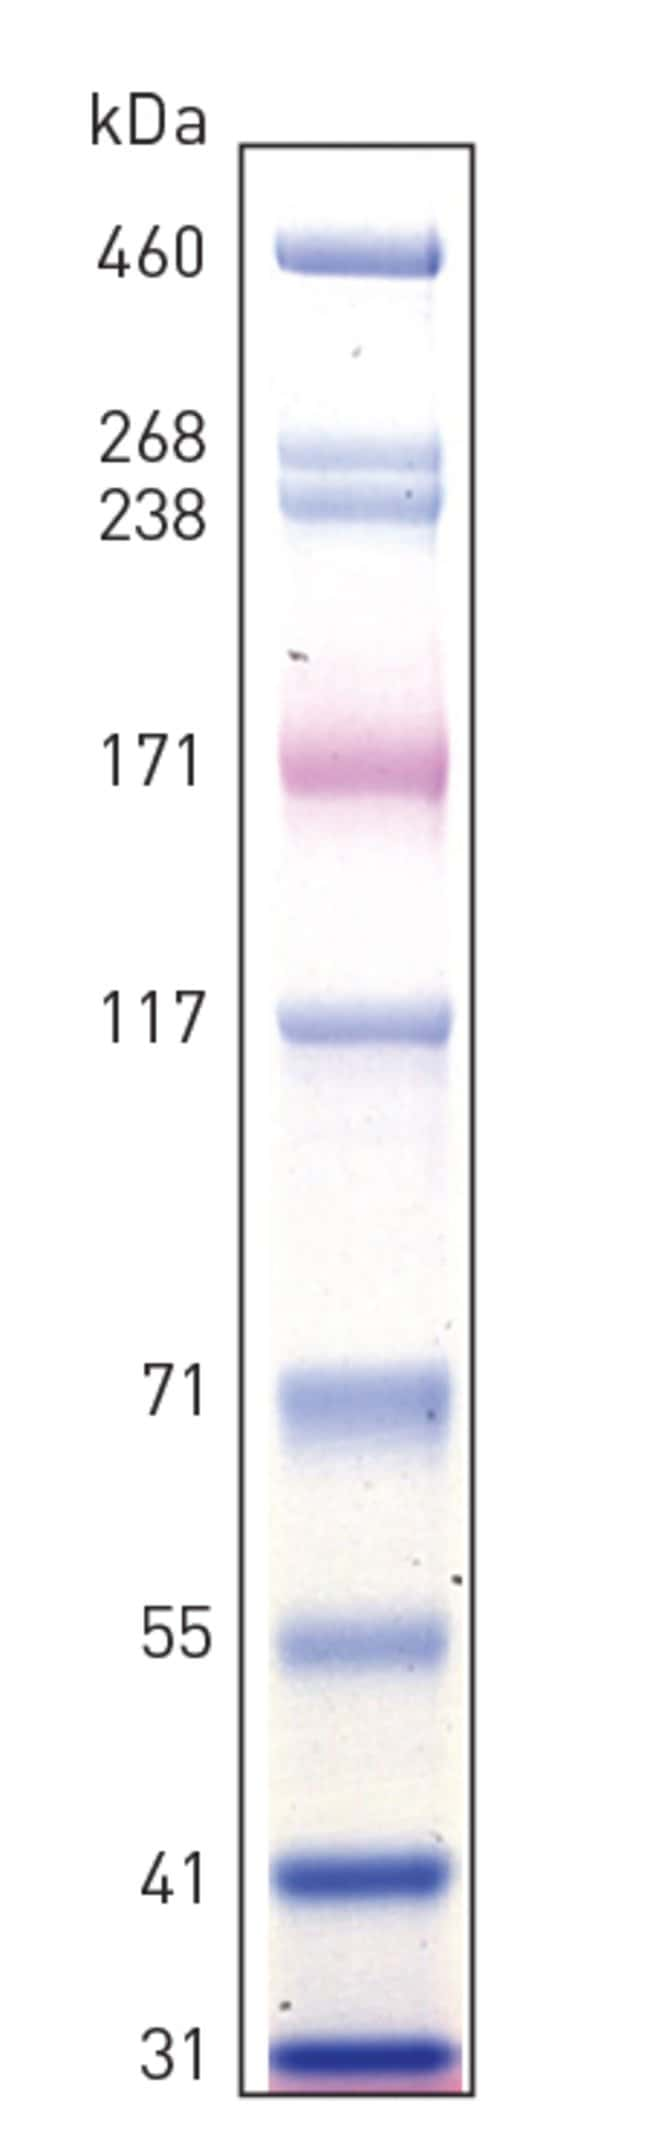 HiMark Pre-stained Protein Standard band profile